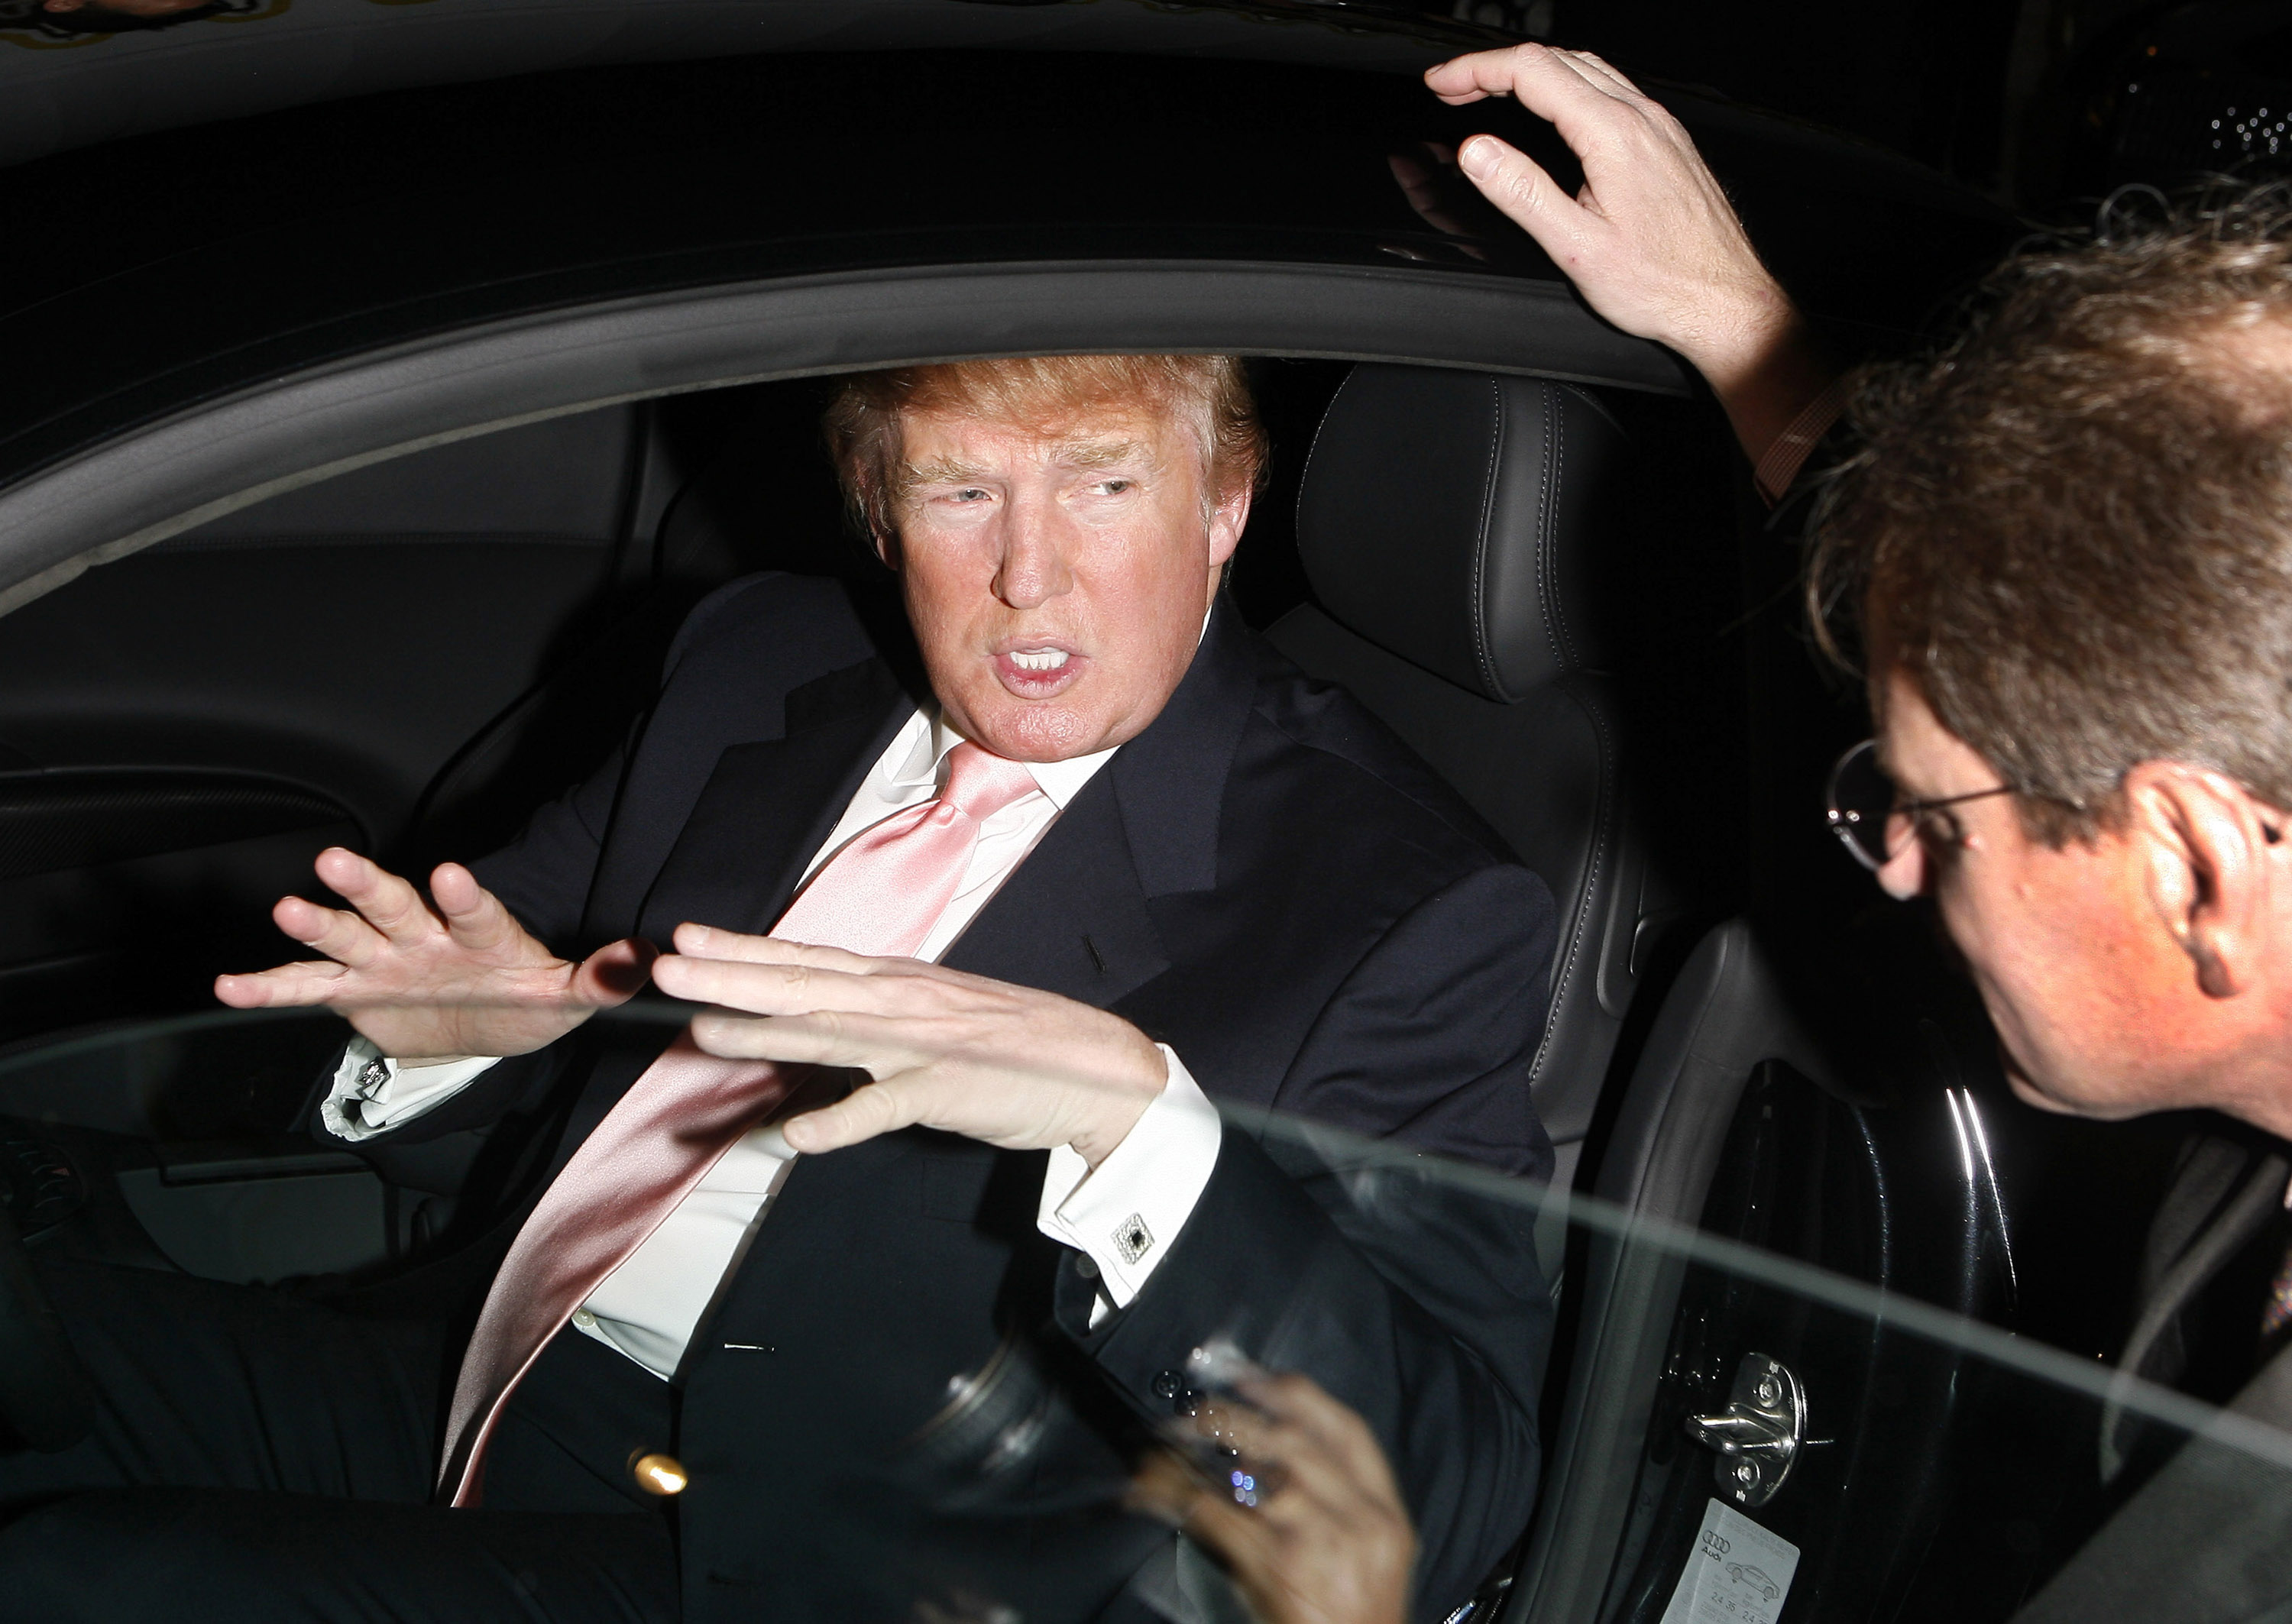 Donald Trump First To Drive Audi R8 in the U.S.